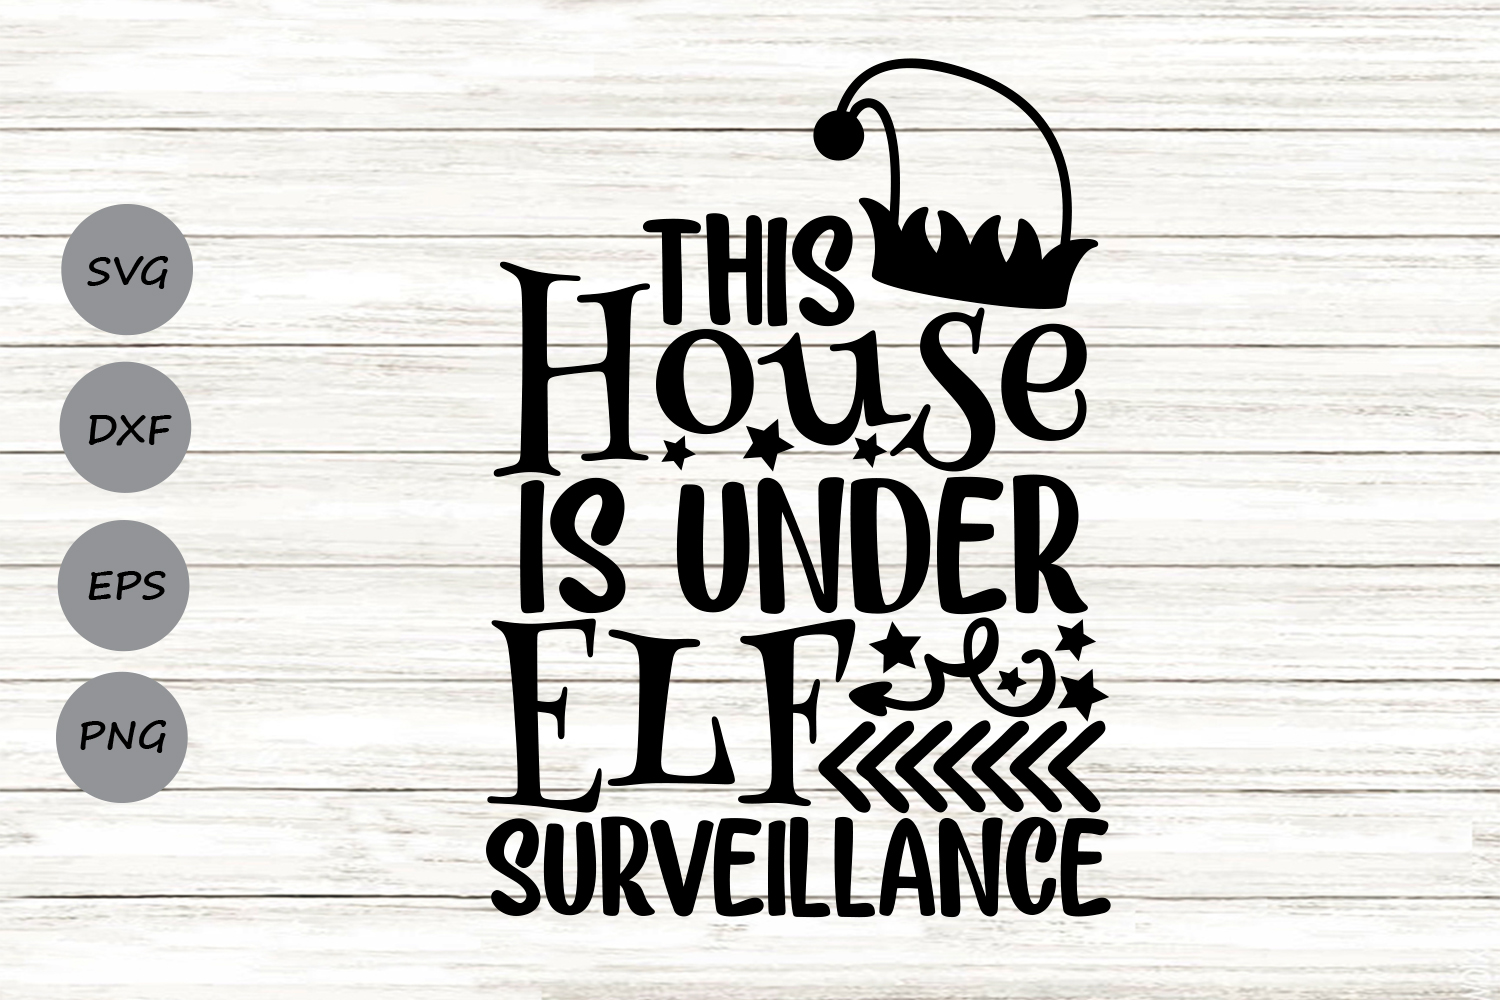 Download Free This House Is Under Elf Surveillance Graphic By Cosmosfineart for Cricut Explore, Silhouette and other cutting machines.